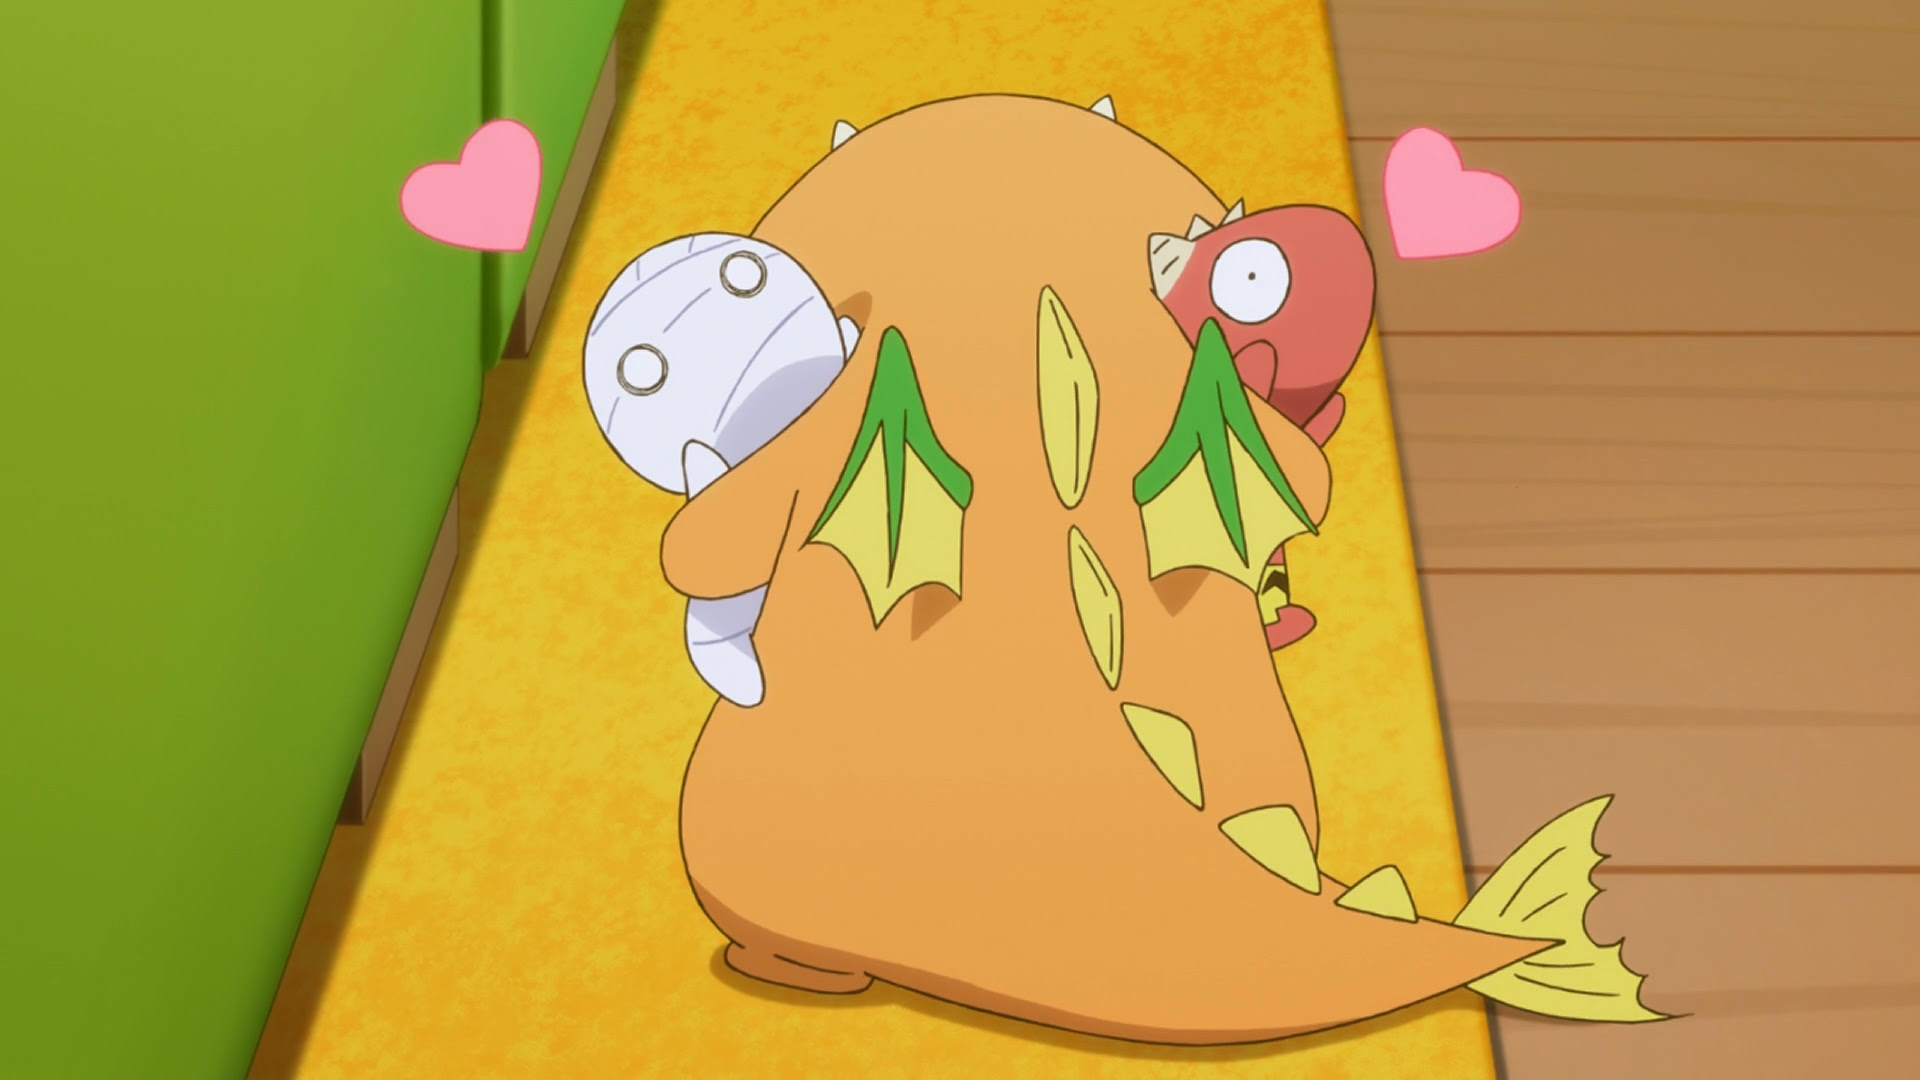 How To S Wiki 88 How To Keep A Mummy Anime Season 2 Both anime are about keeping and raising unusual pets. how to keep a mummy anime season 2